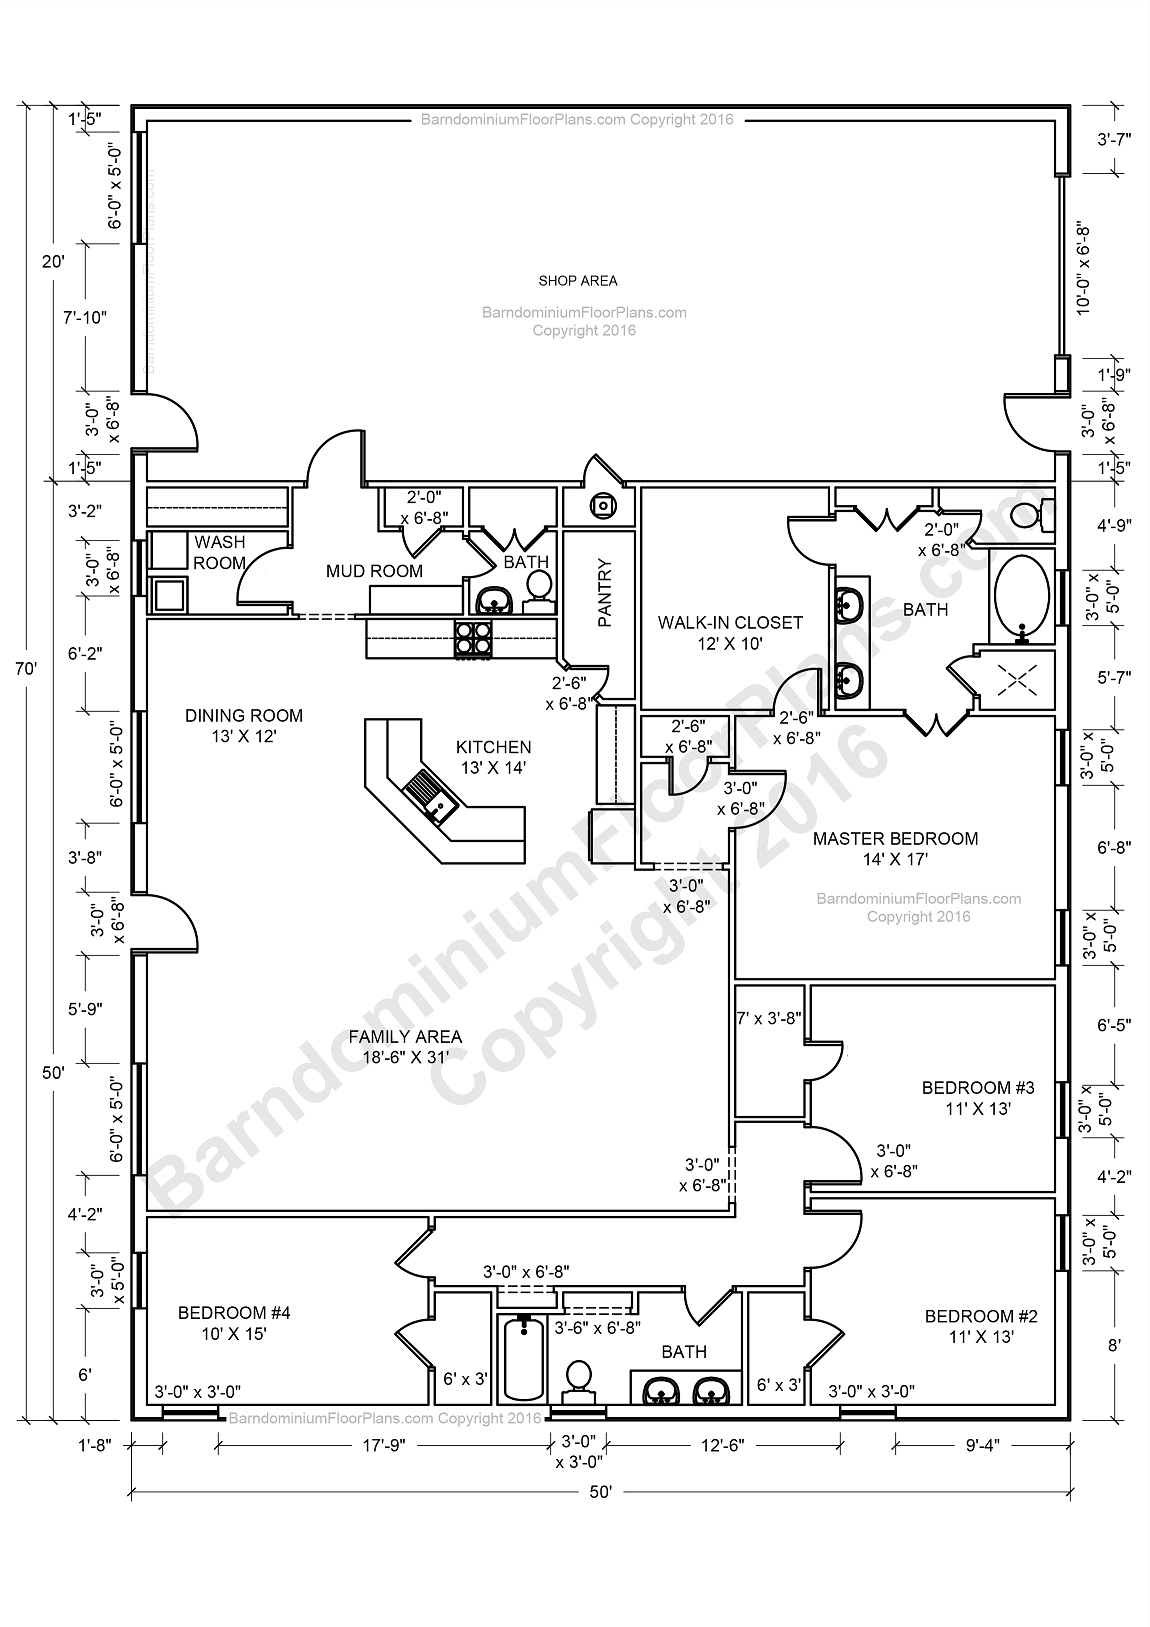 Barndominium floor plans barndominium floor plans 1 800 for Barn home floor plans